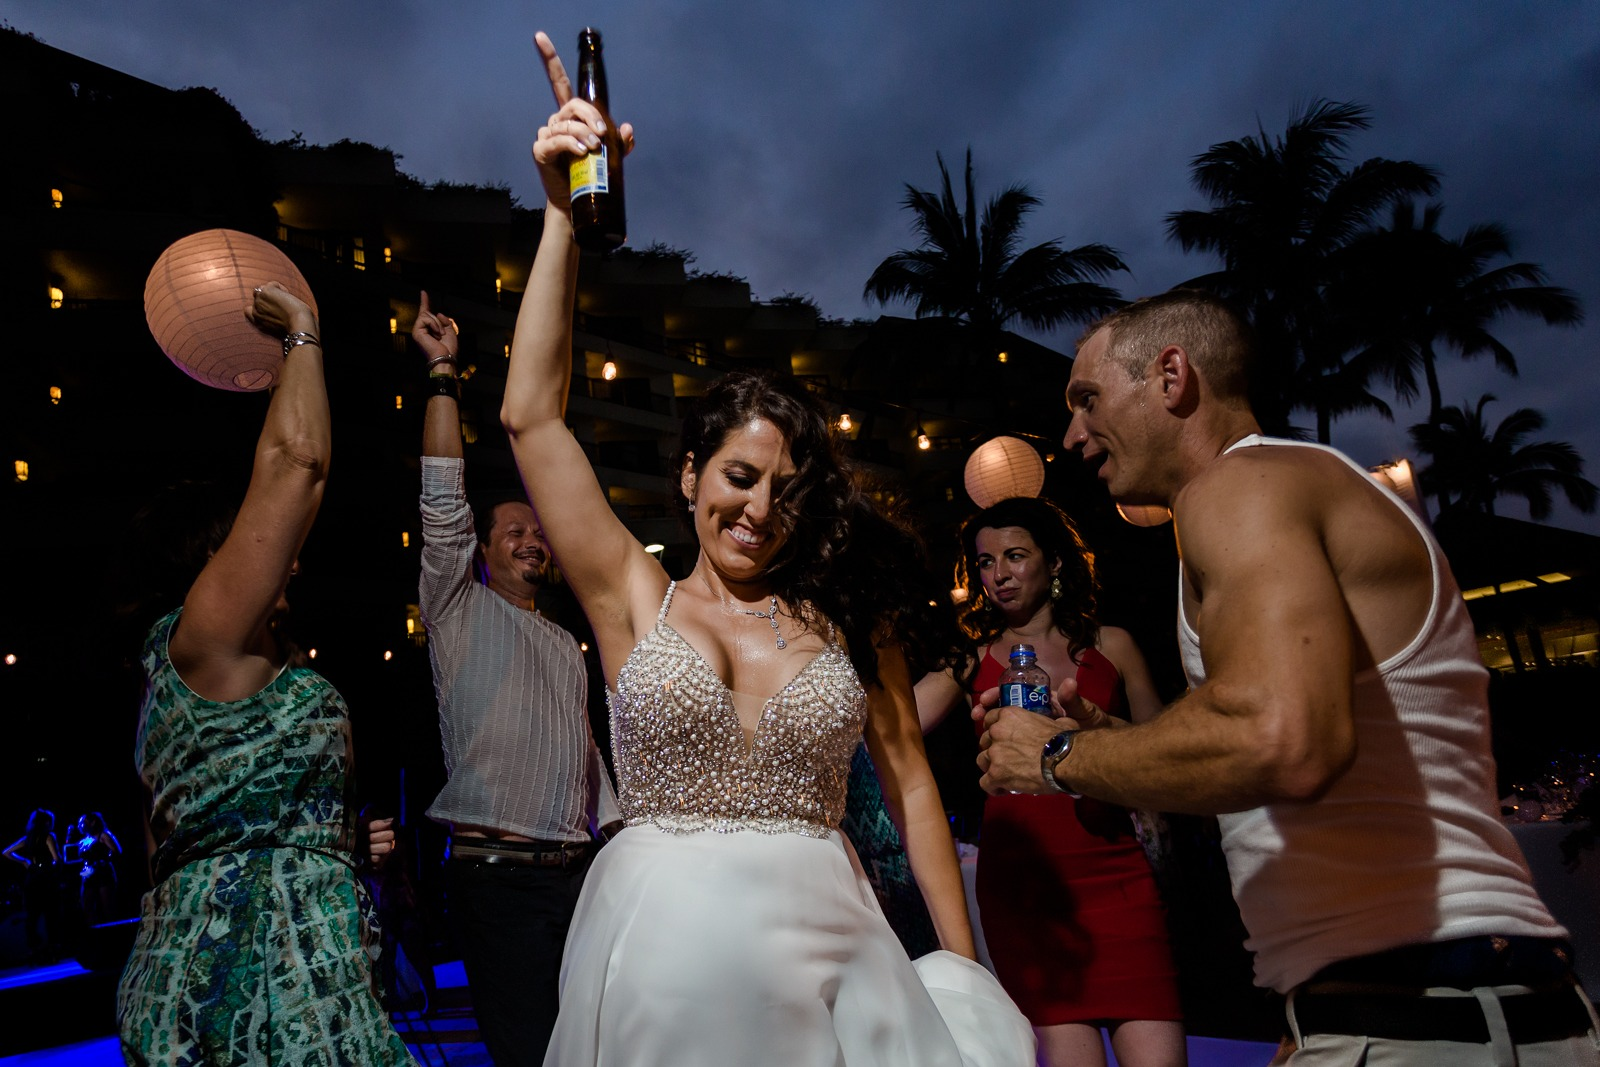 wedding-party-bride-dance-smile-happy-fun-vallarta-drink-mexico-fiesta